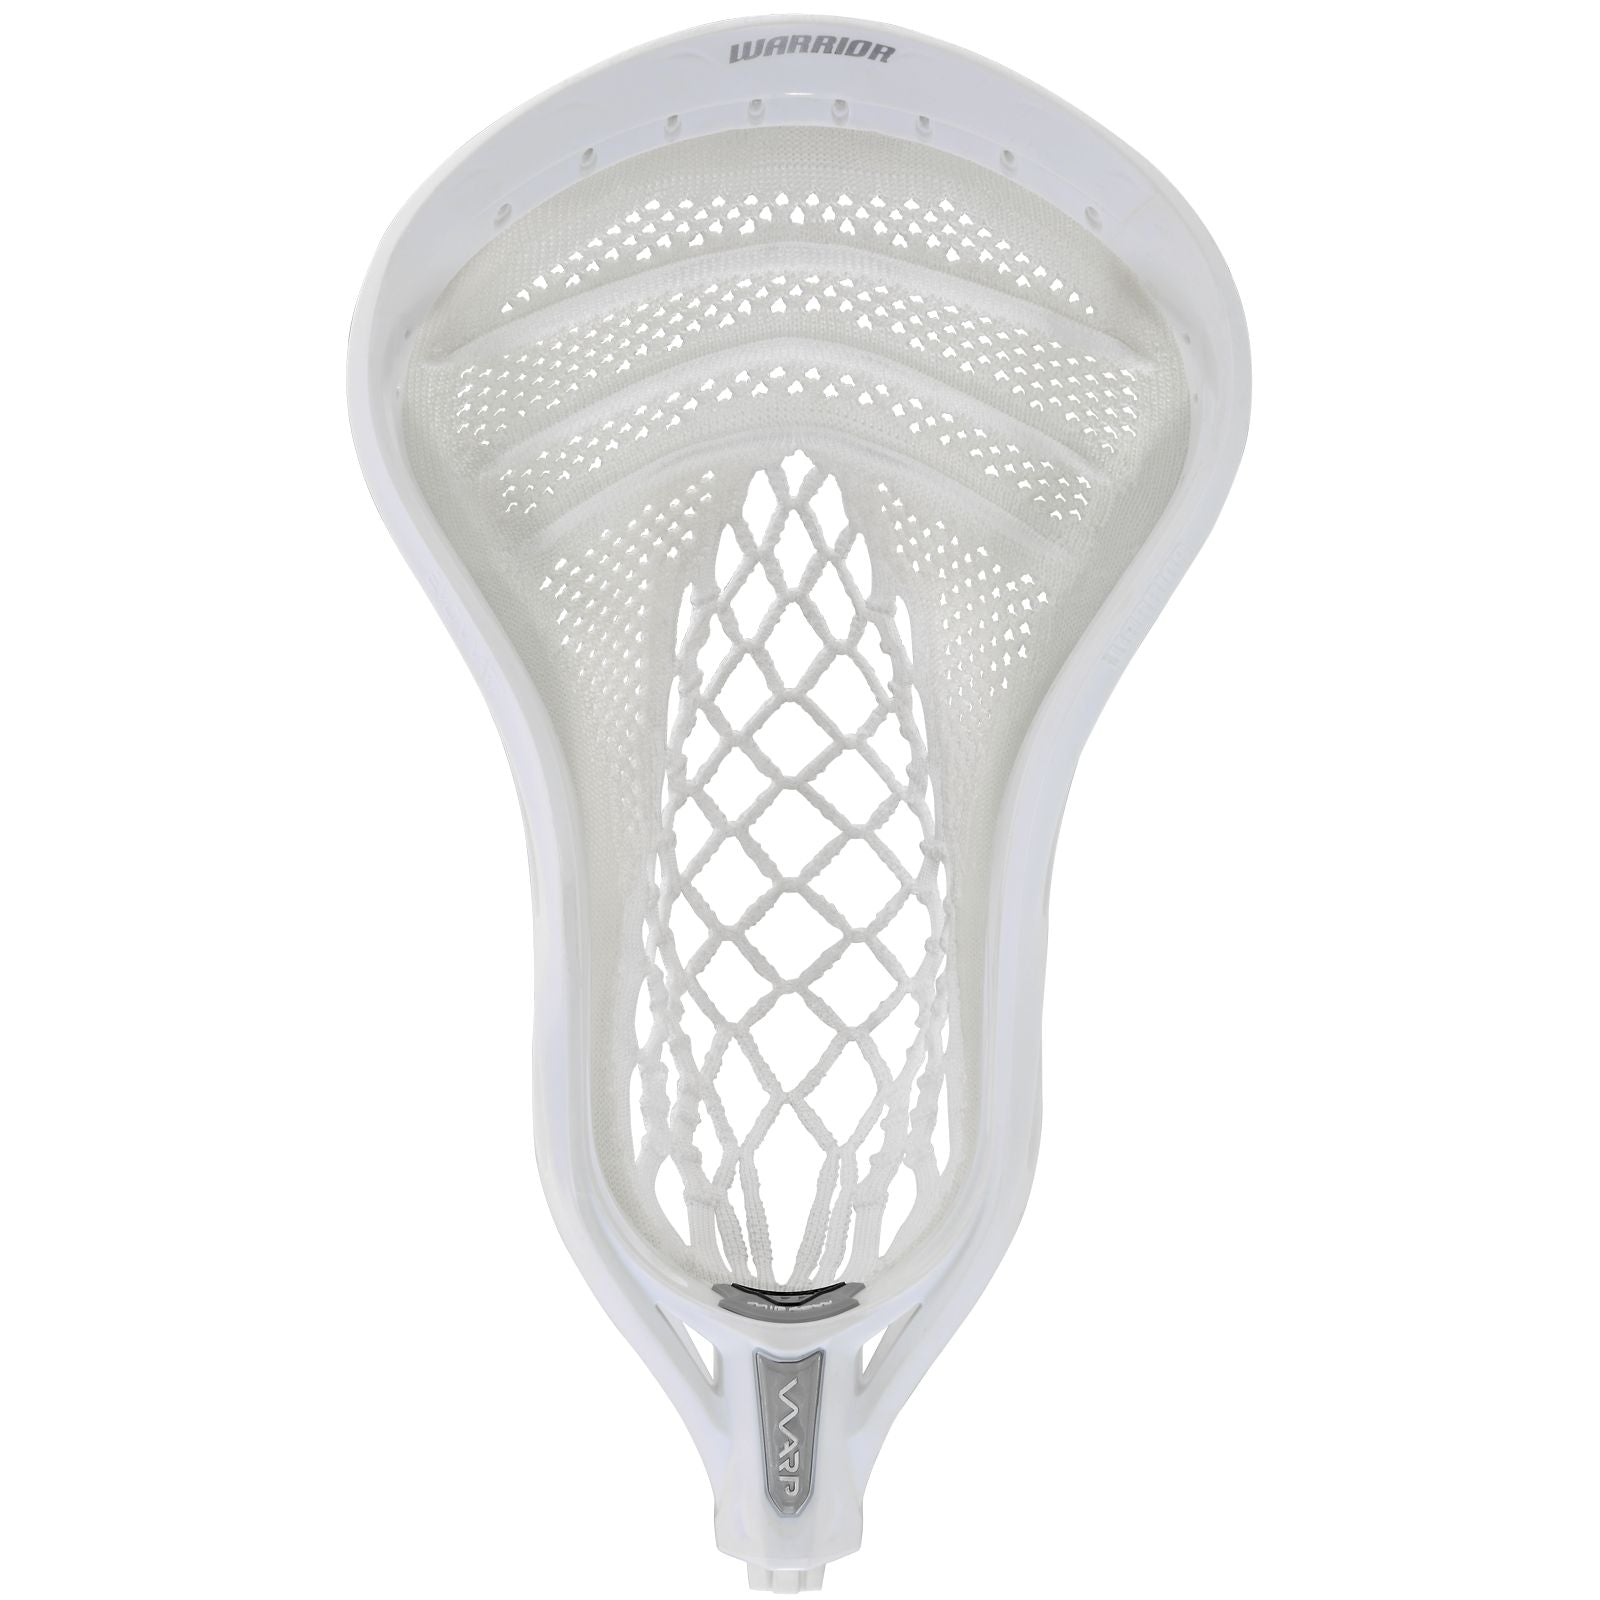 Warrior Evo Warp Pro 2 Head